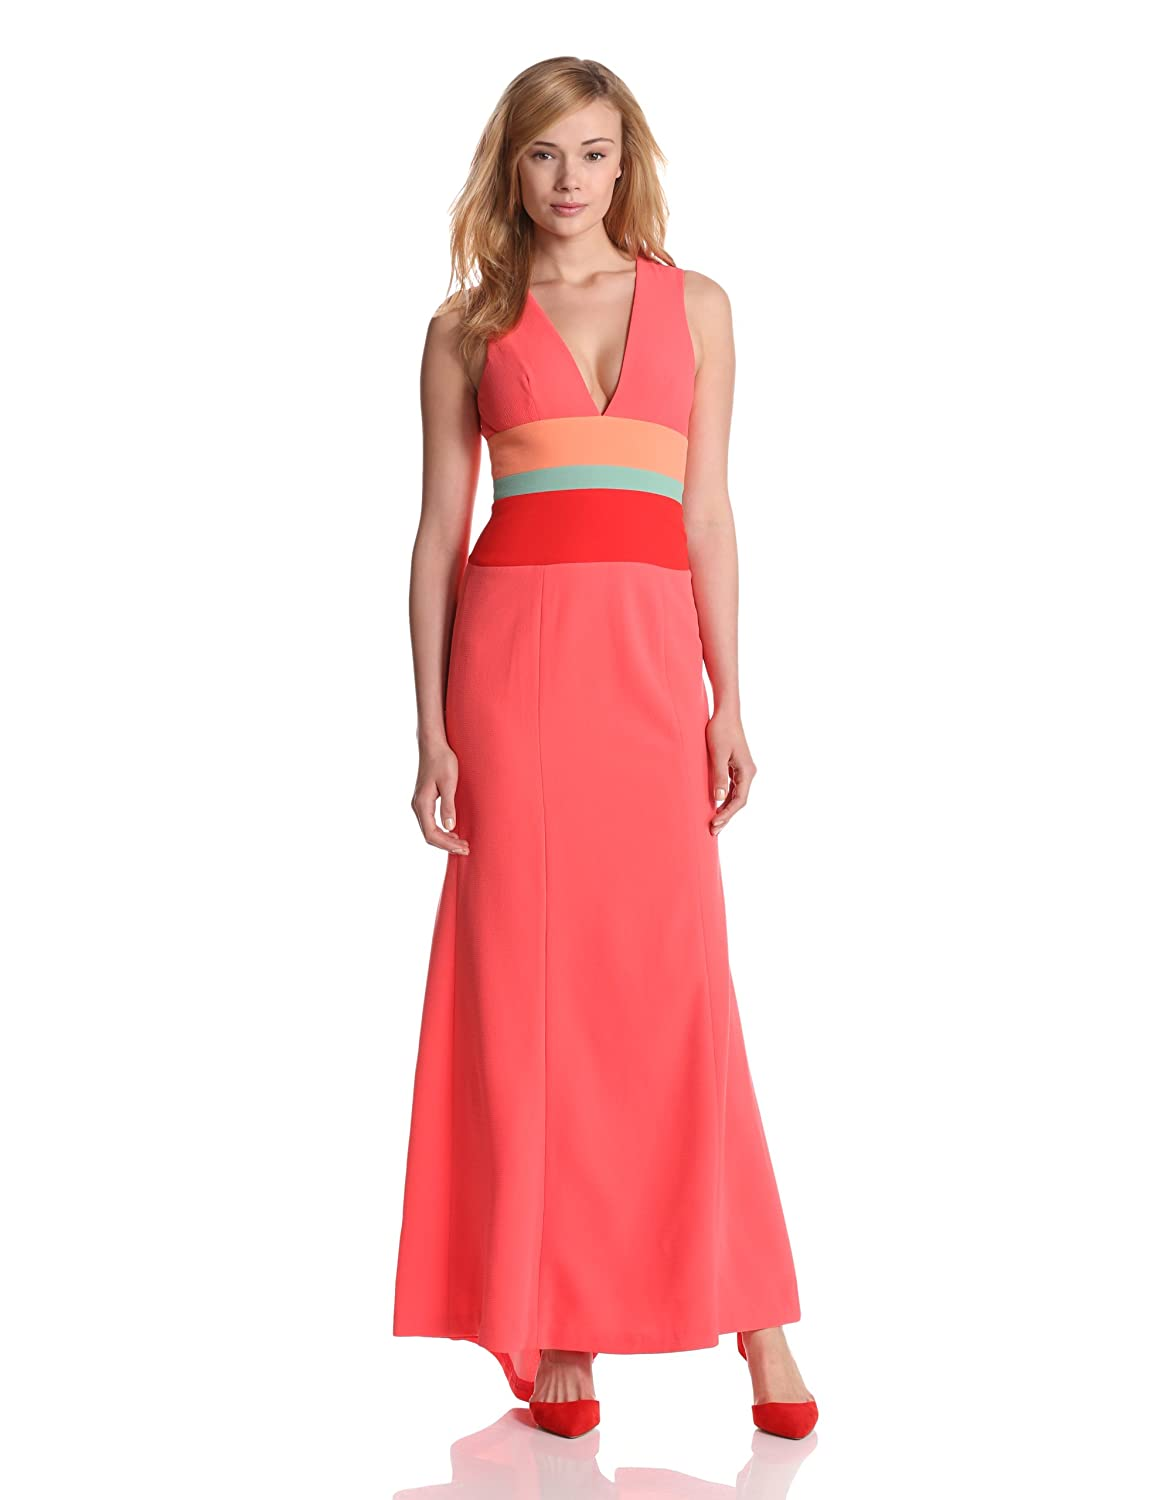 Lizette Woven Evening Gown